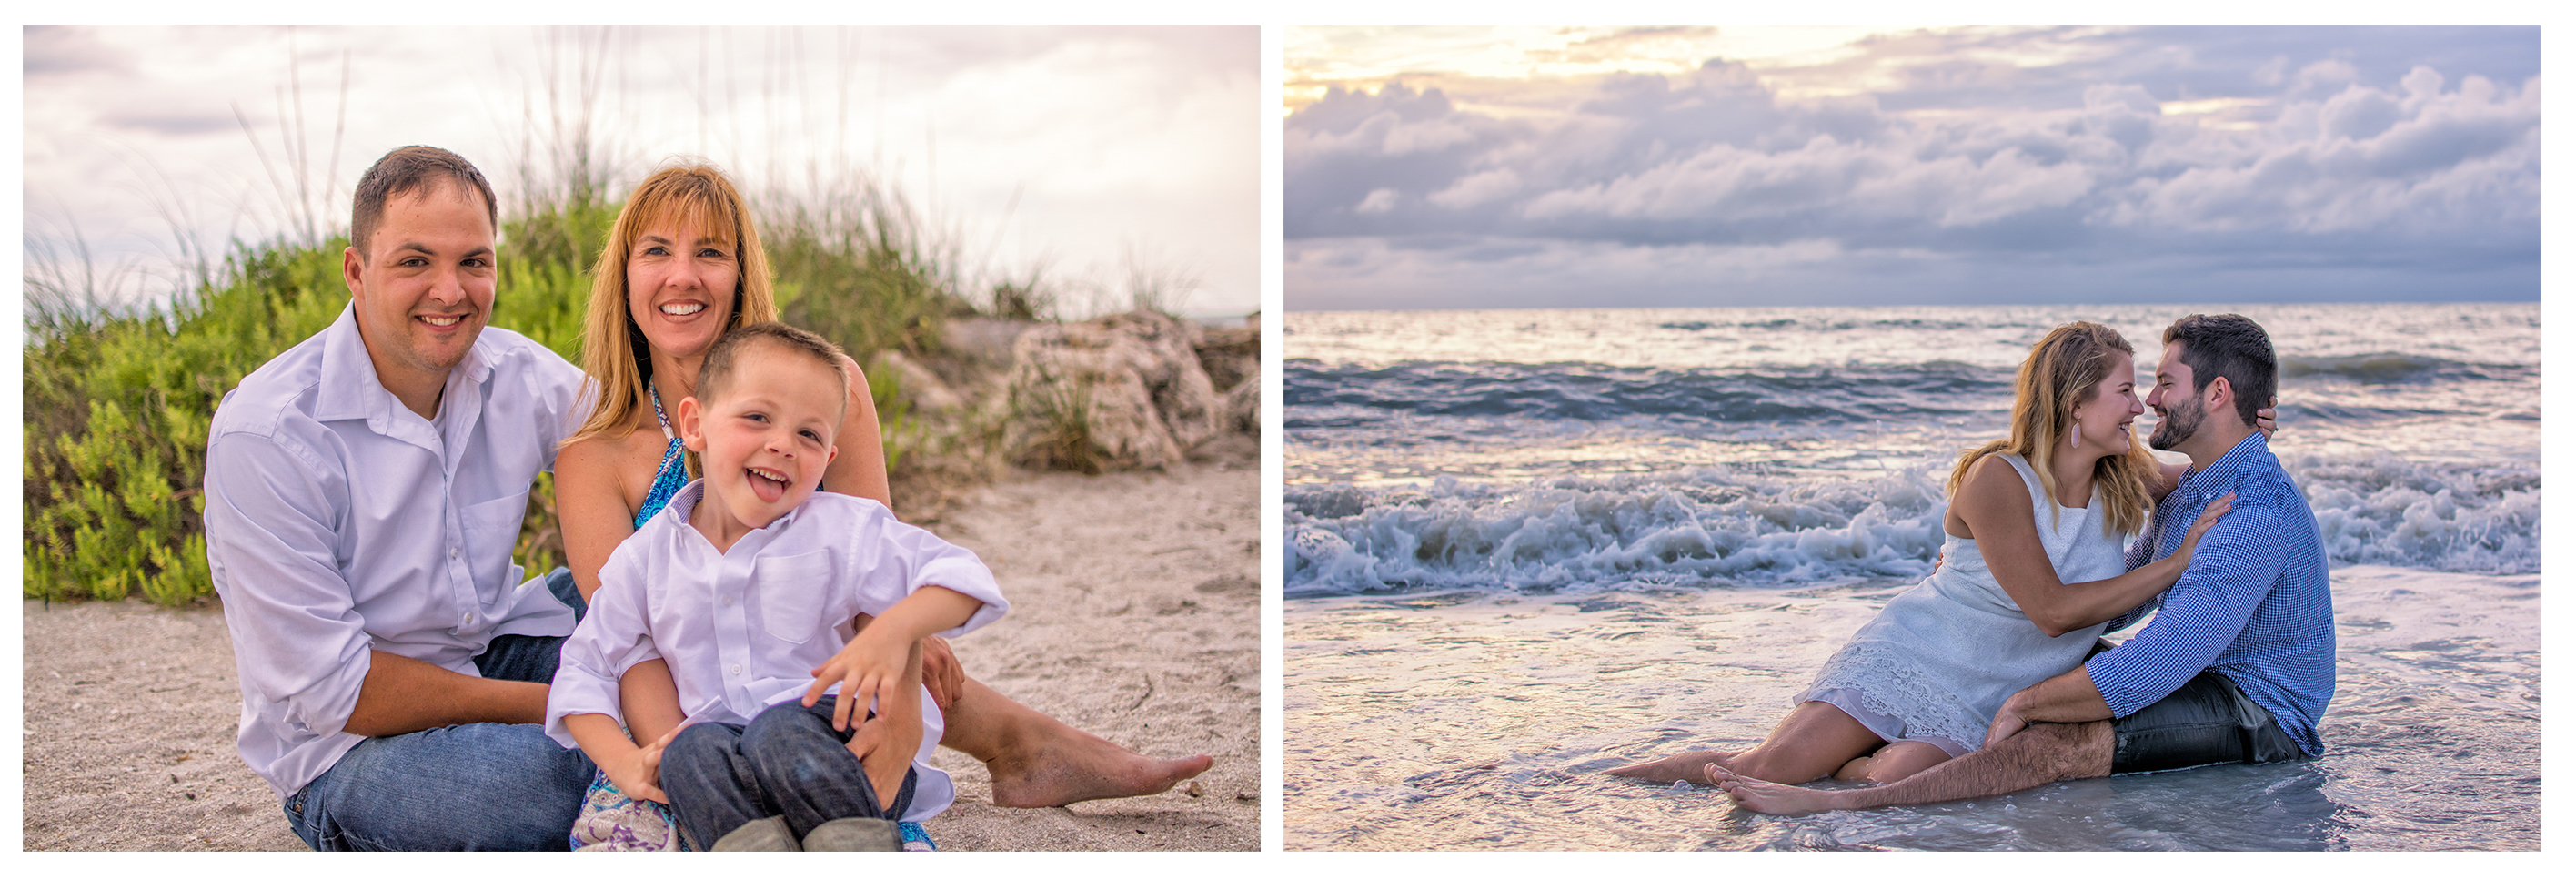 clearwater beach photographers